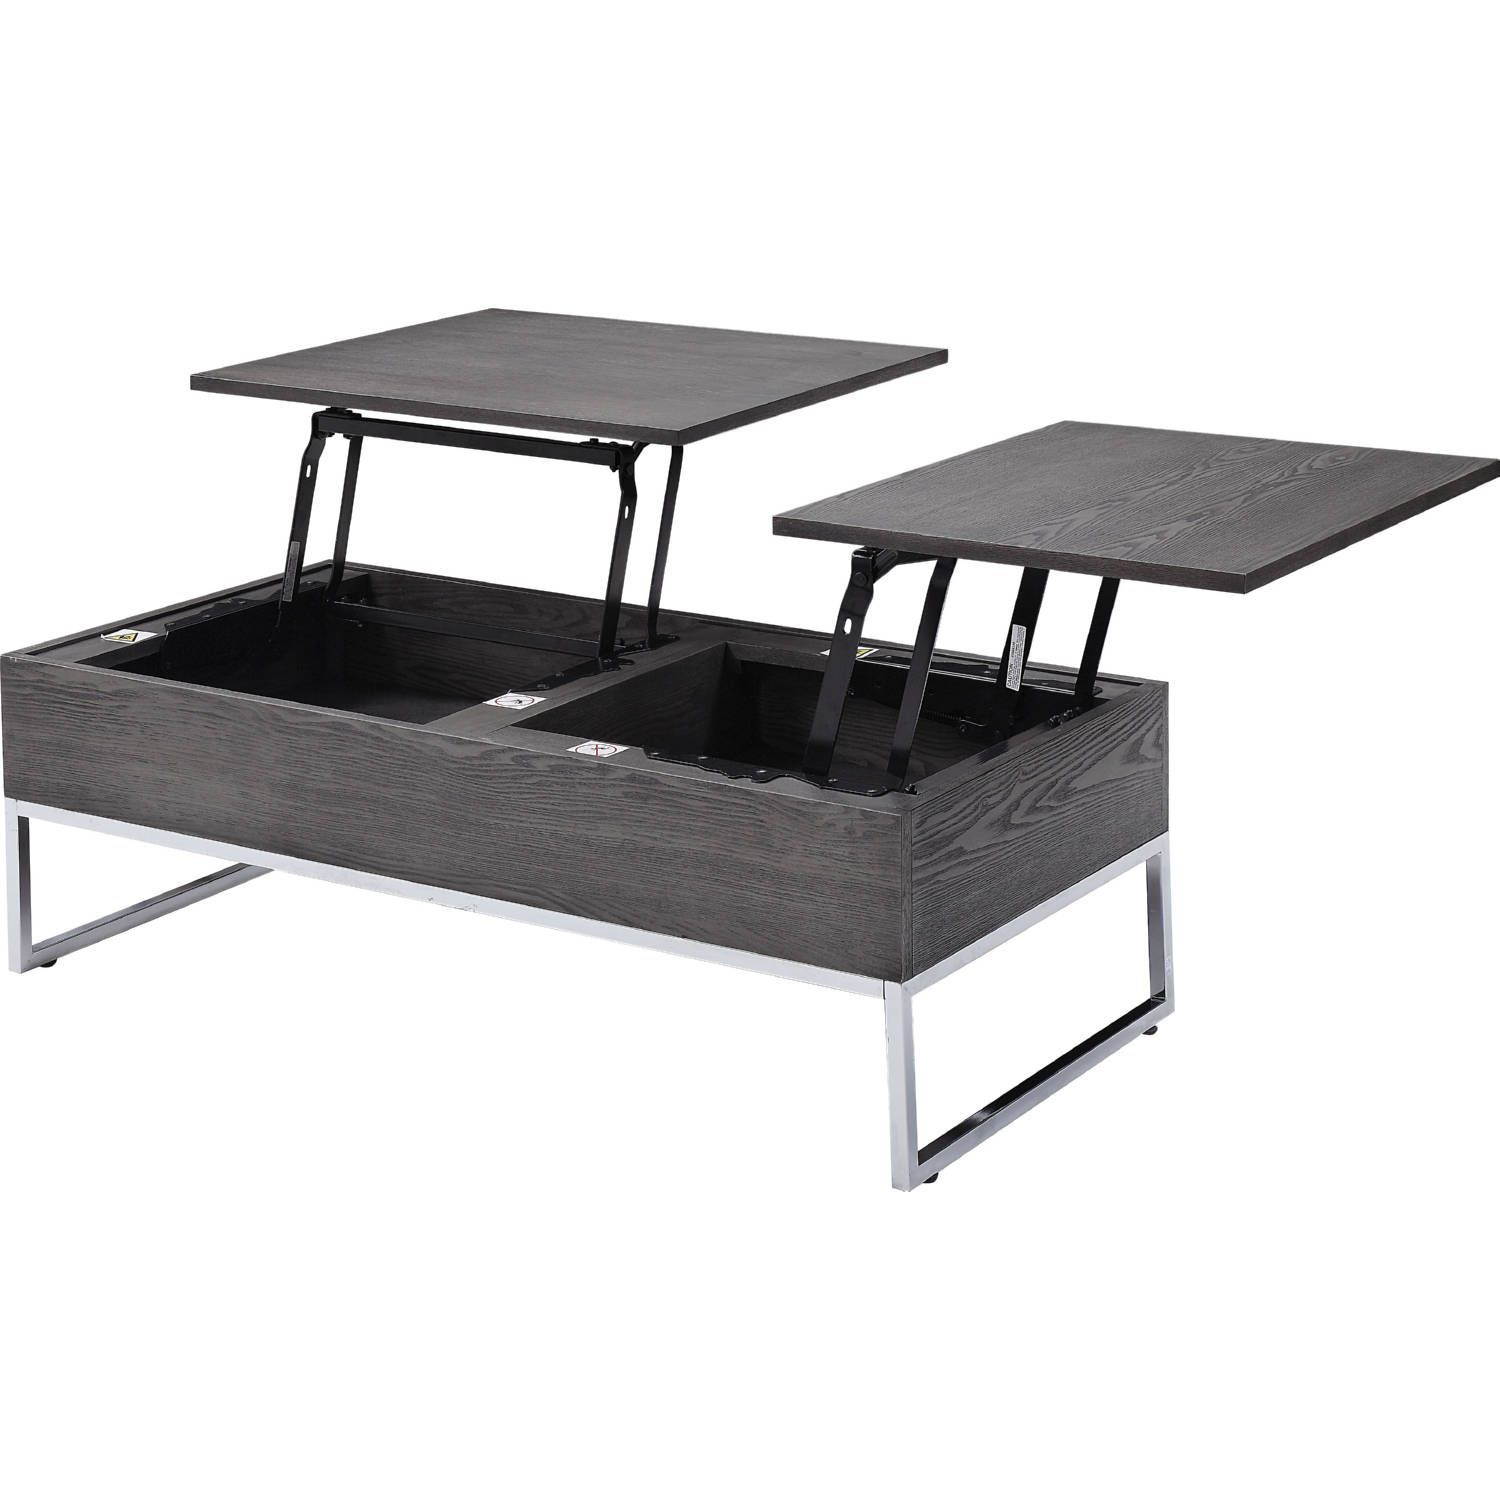 A Comprehensive Overview On Home Decoration In 2020 Coffee Table Grey Coffee Table Coffee Table With Storage